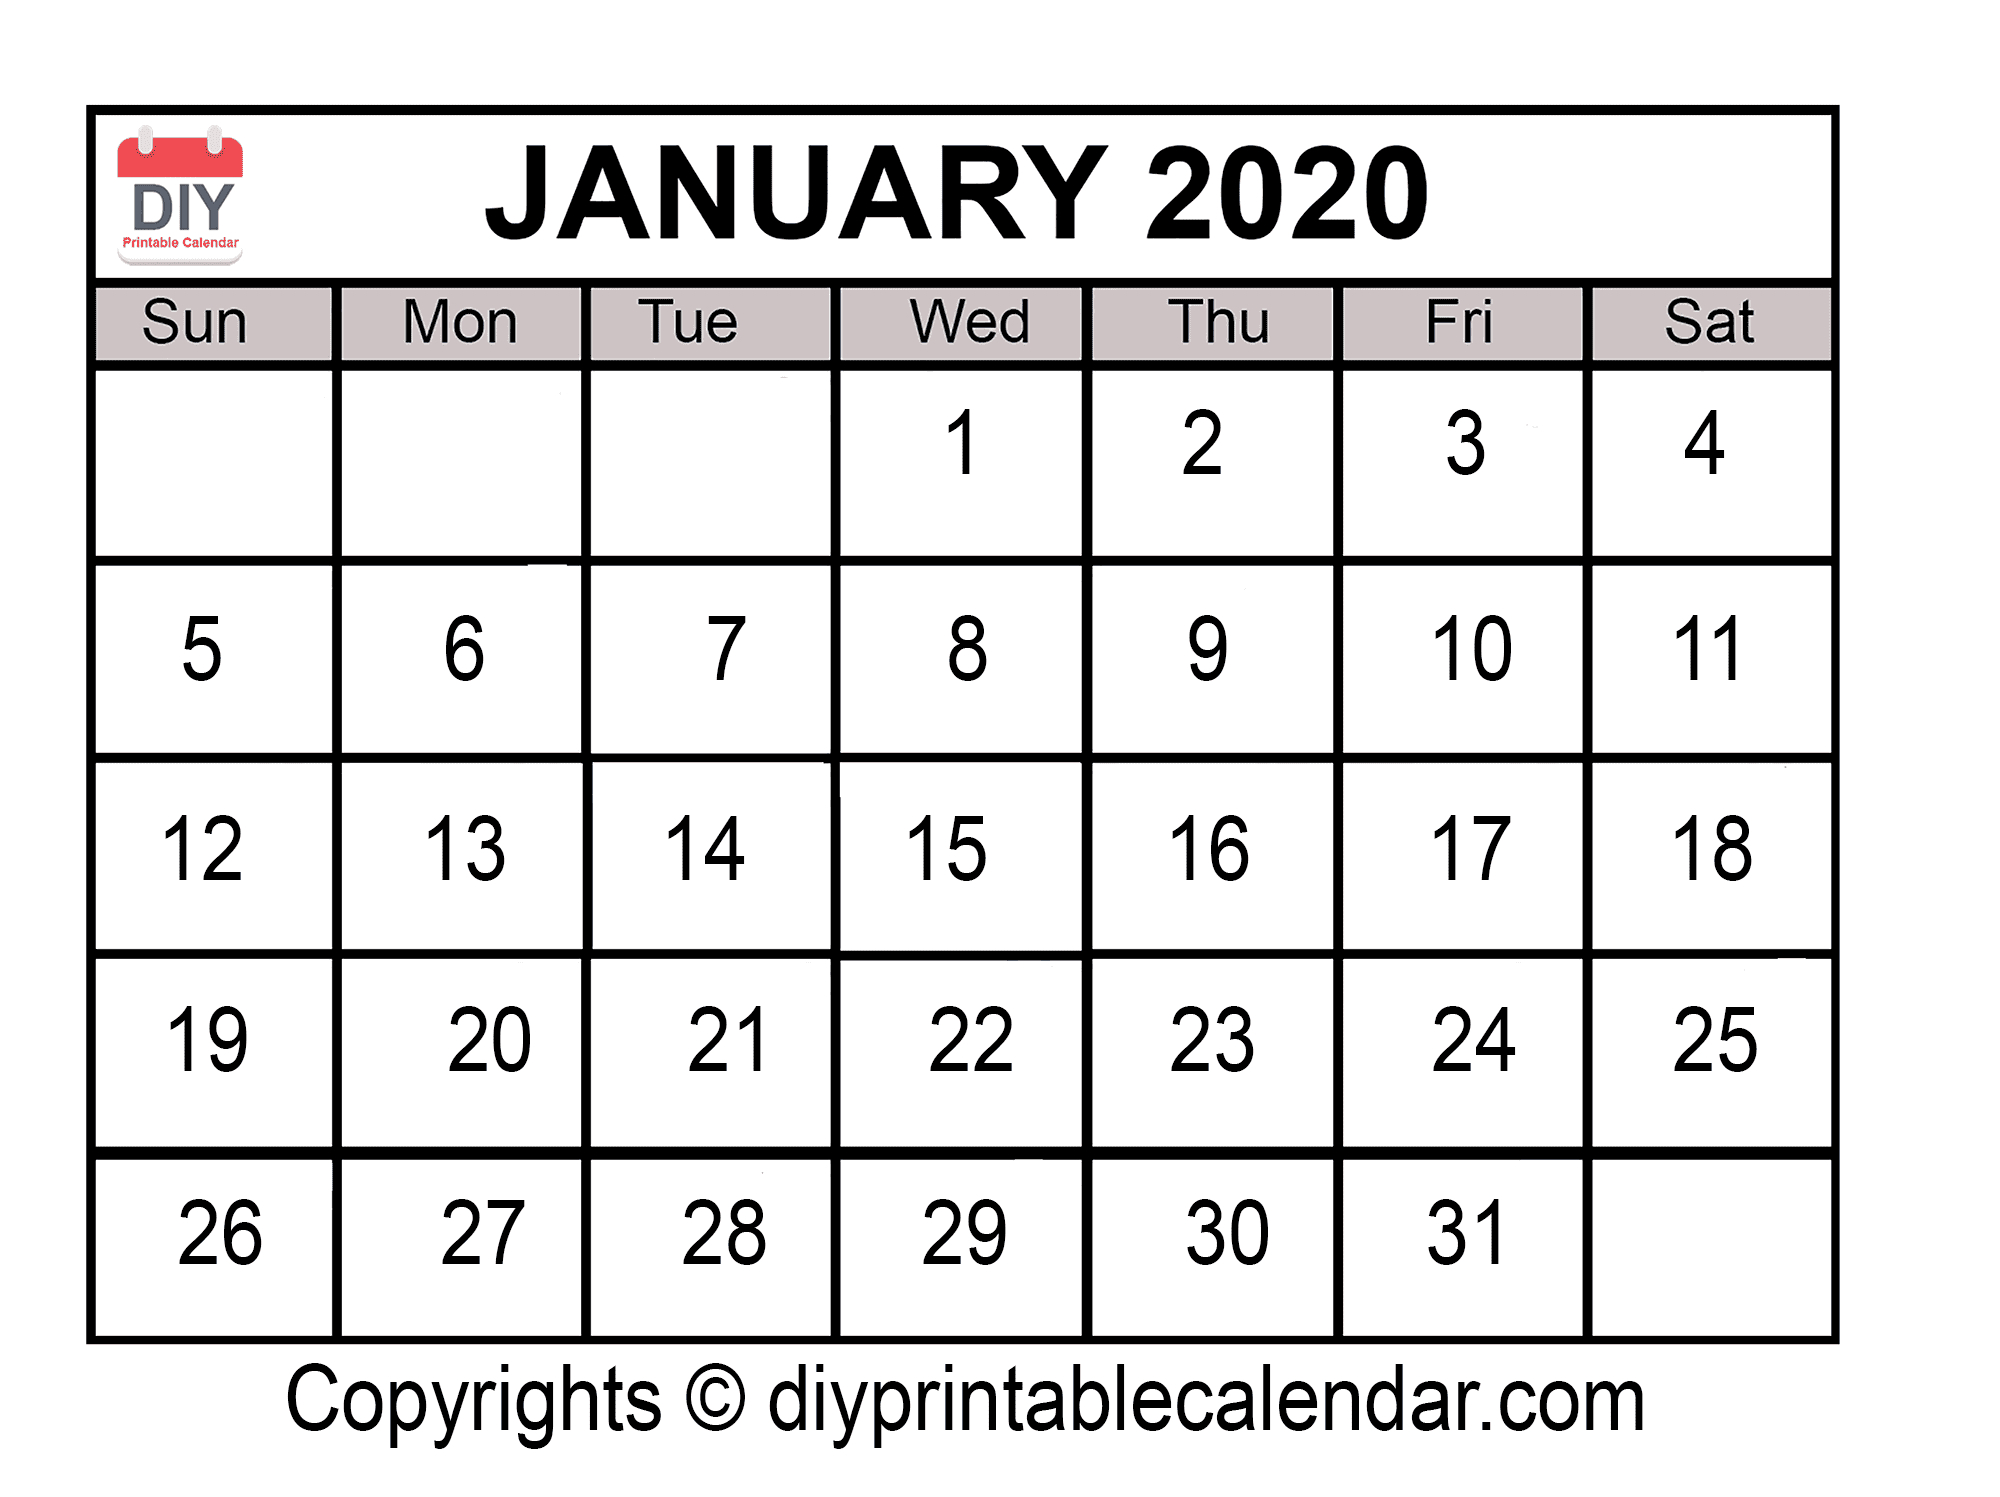 January 2020 Printable Calendar Template